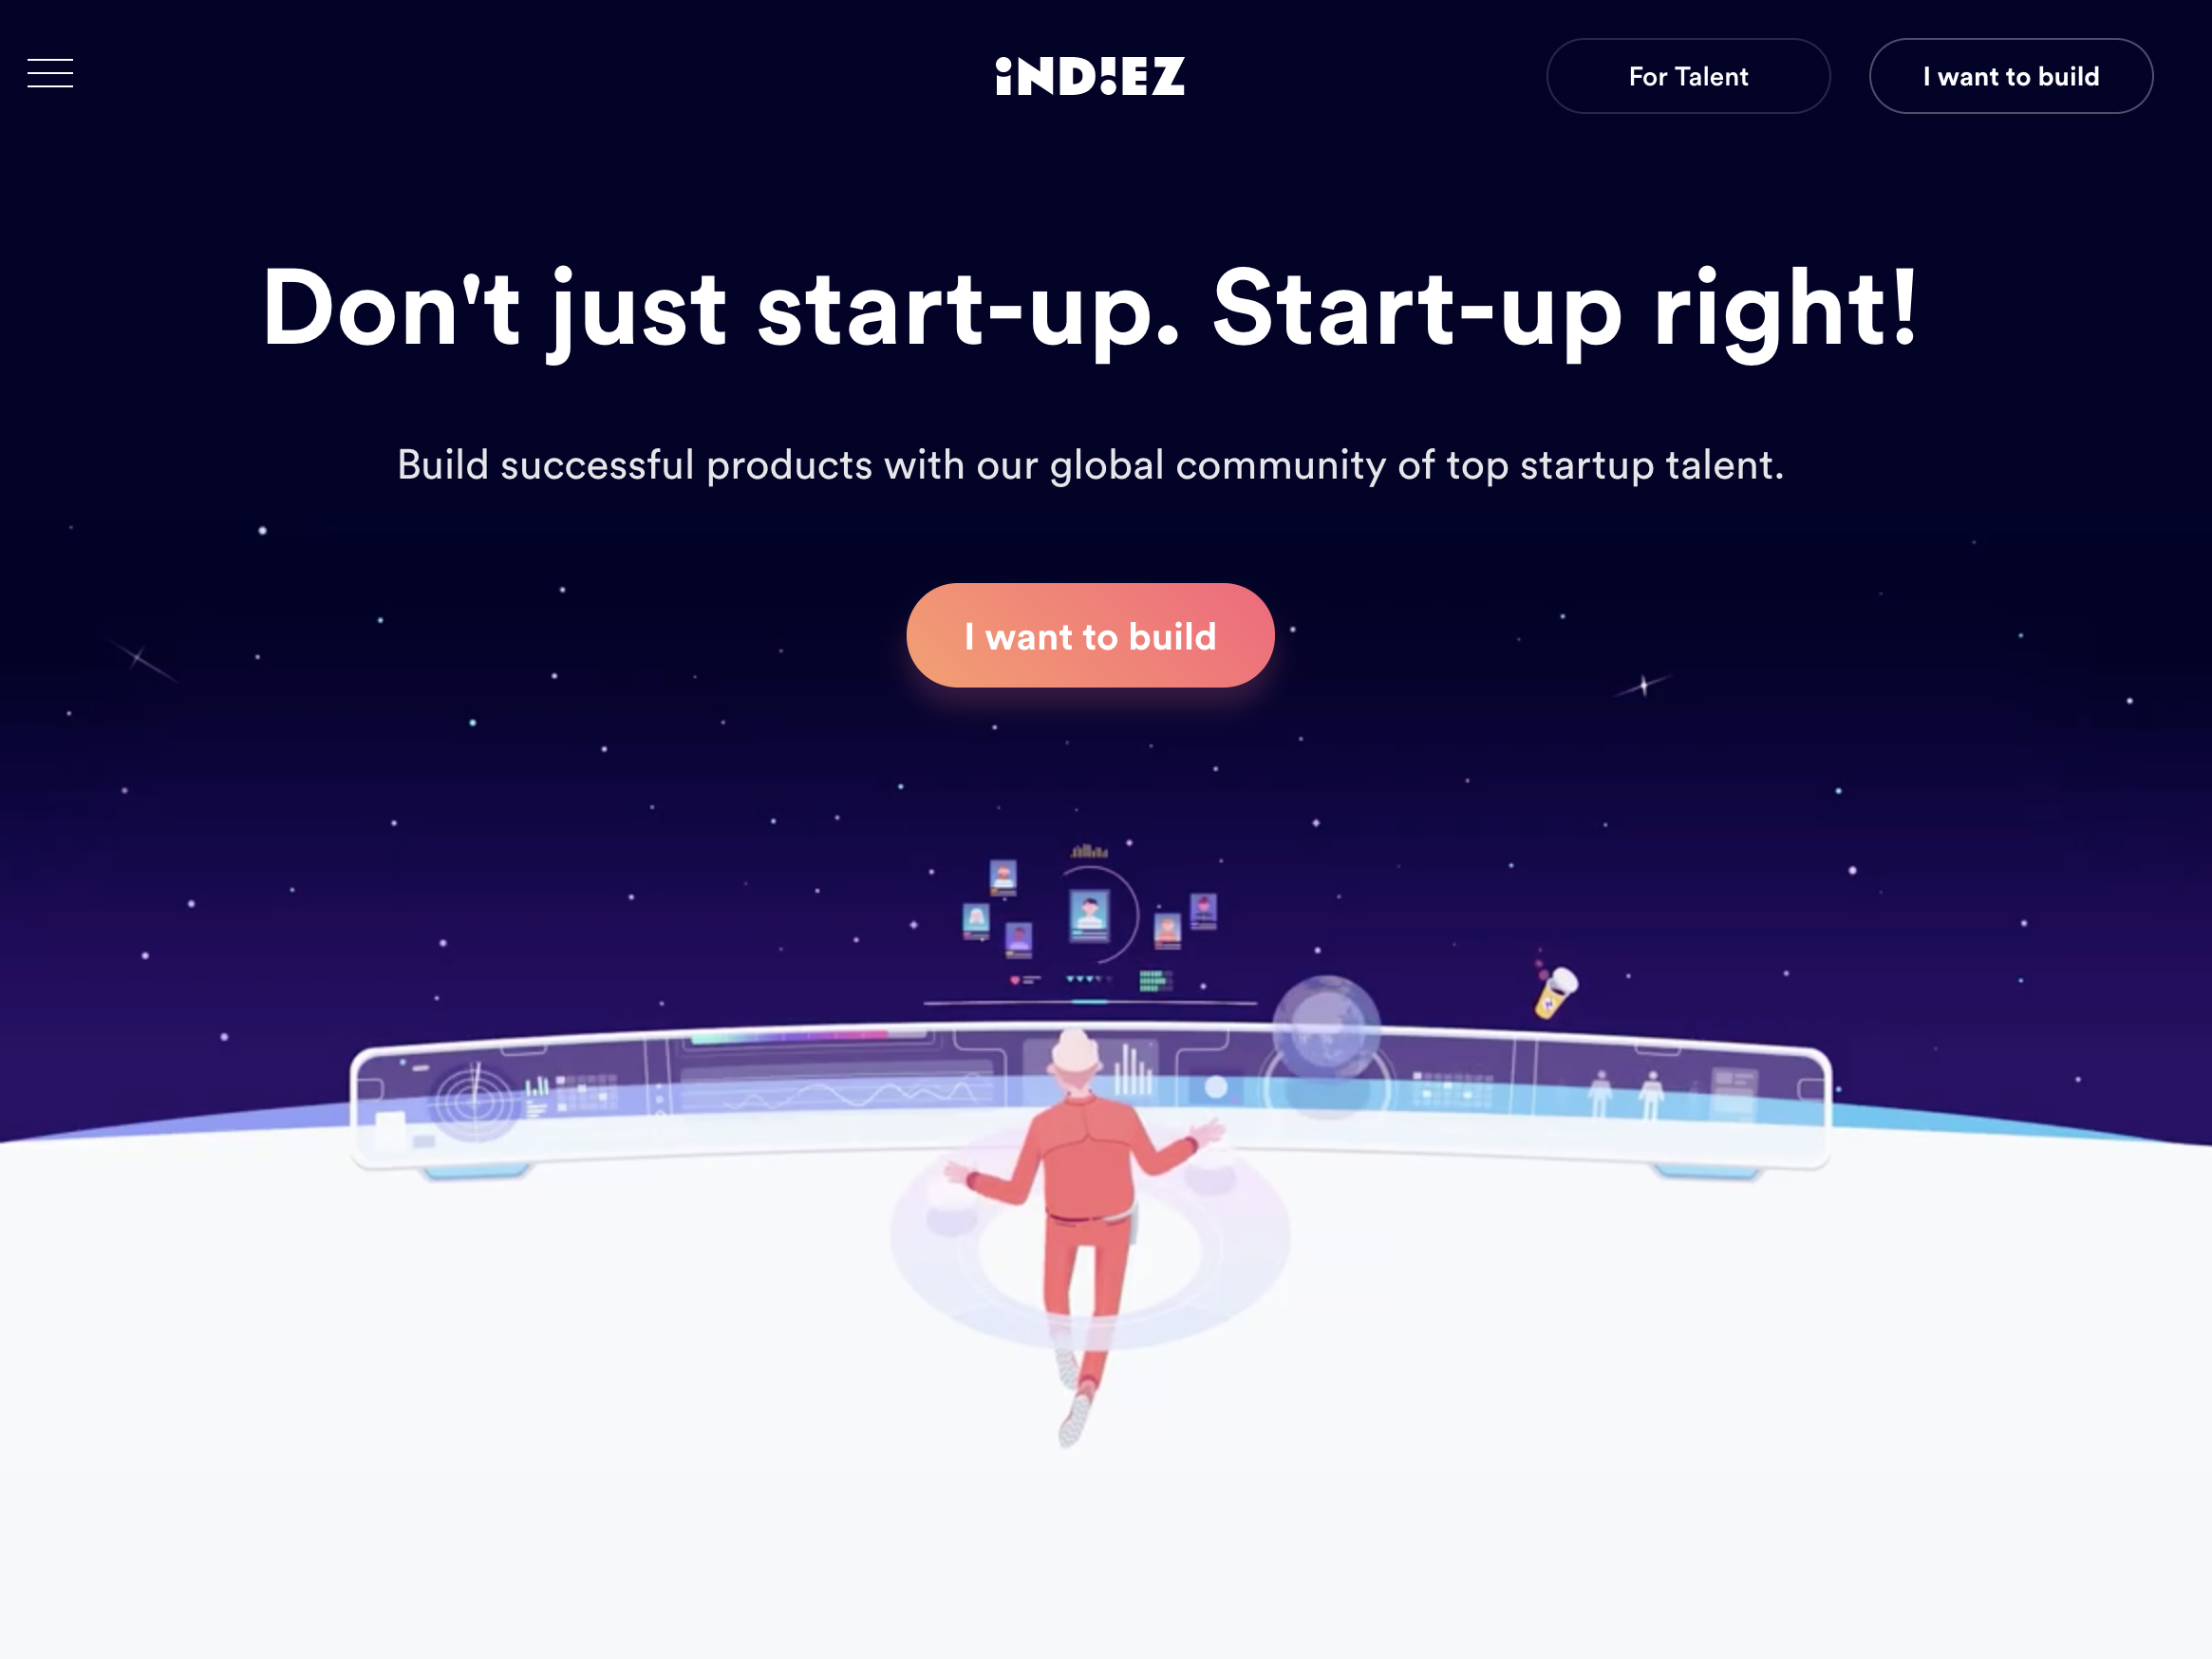 Indiez aims to raise the quality of freelancer platforms